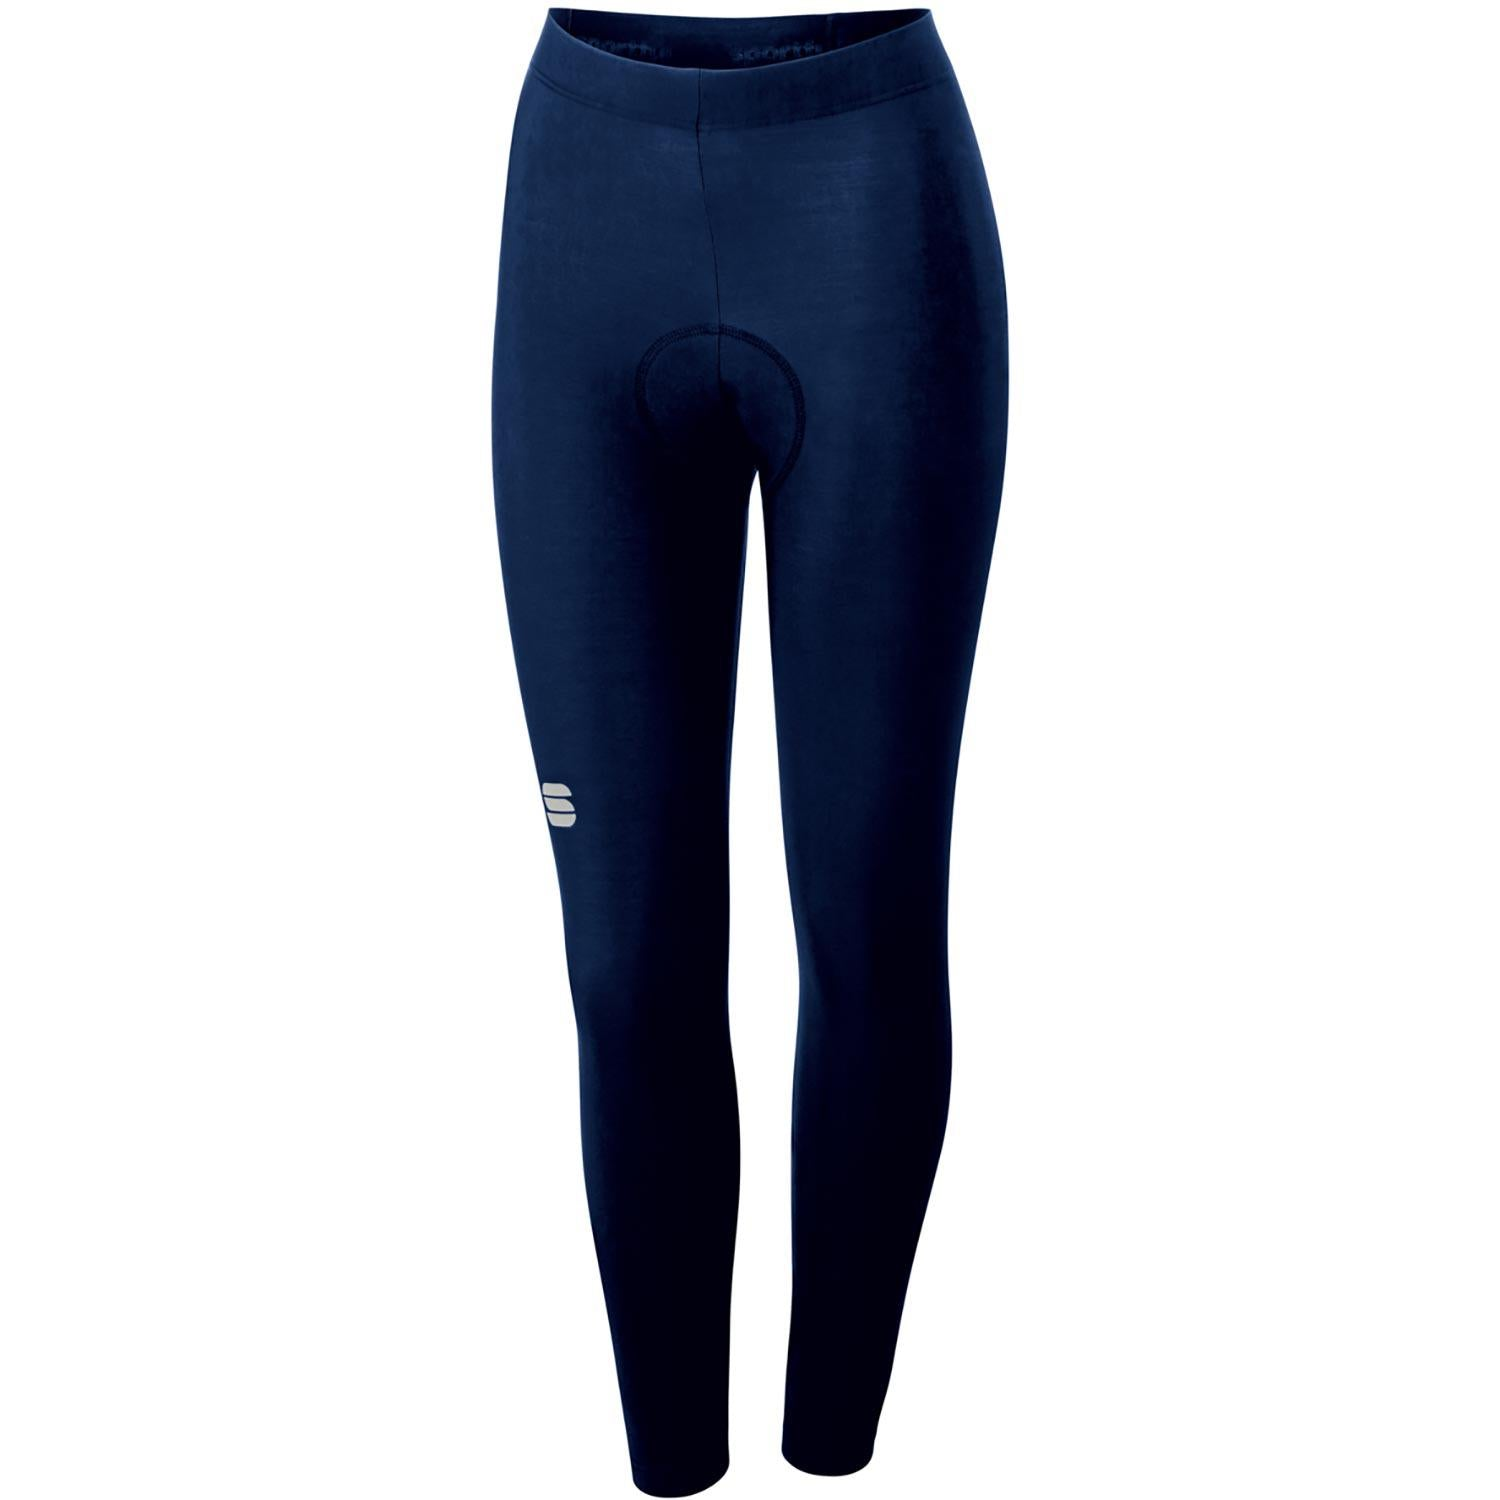 Sportful-Sportful Classic Women's Tights-Blue-XS-SF205370131-saddleback-elite-performance-cycling